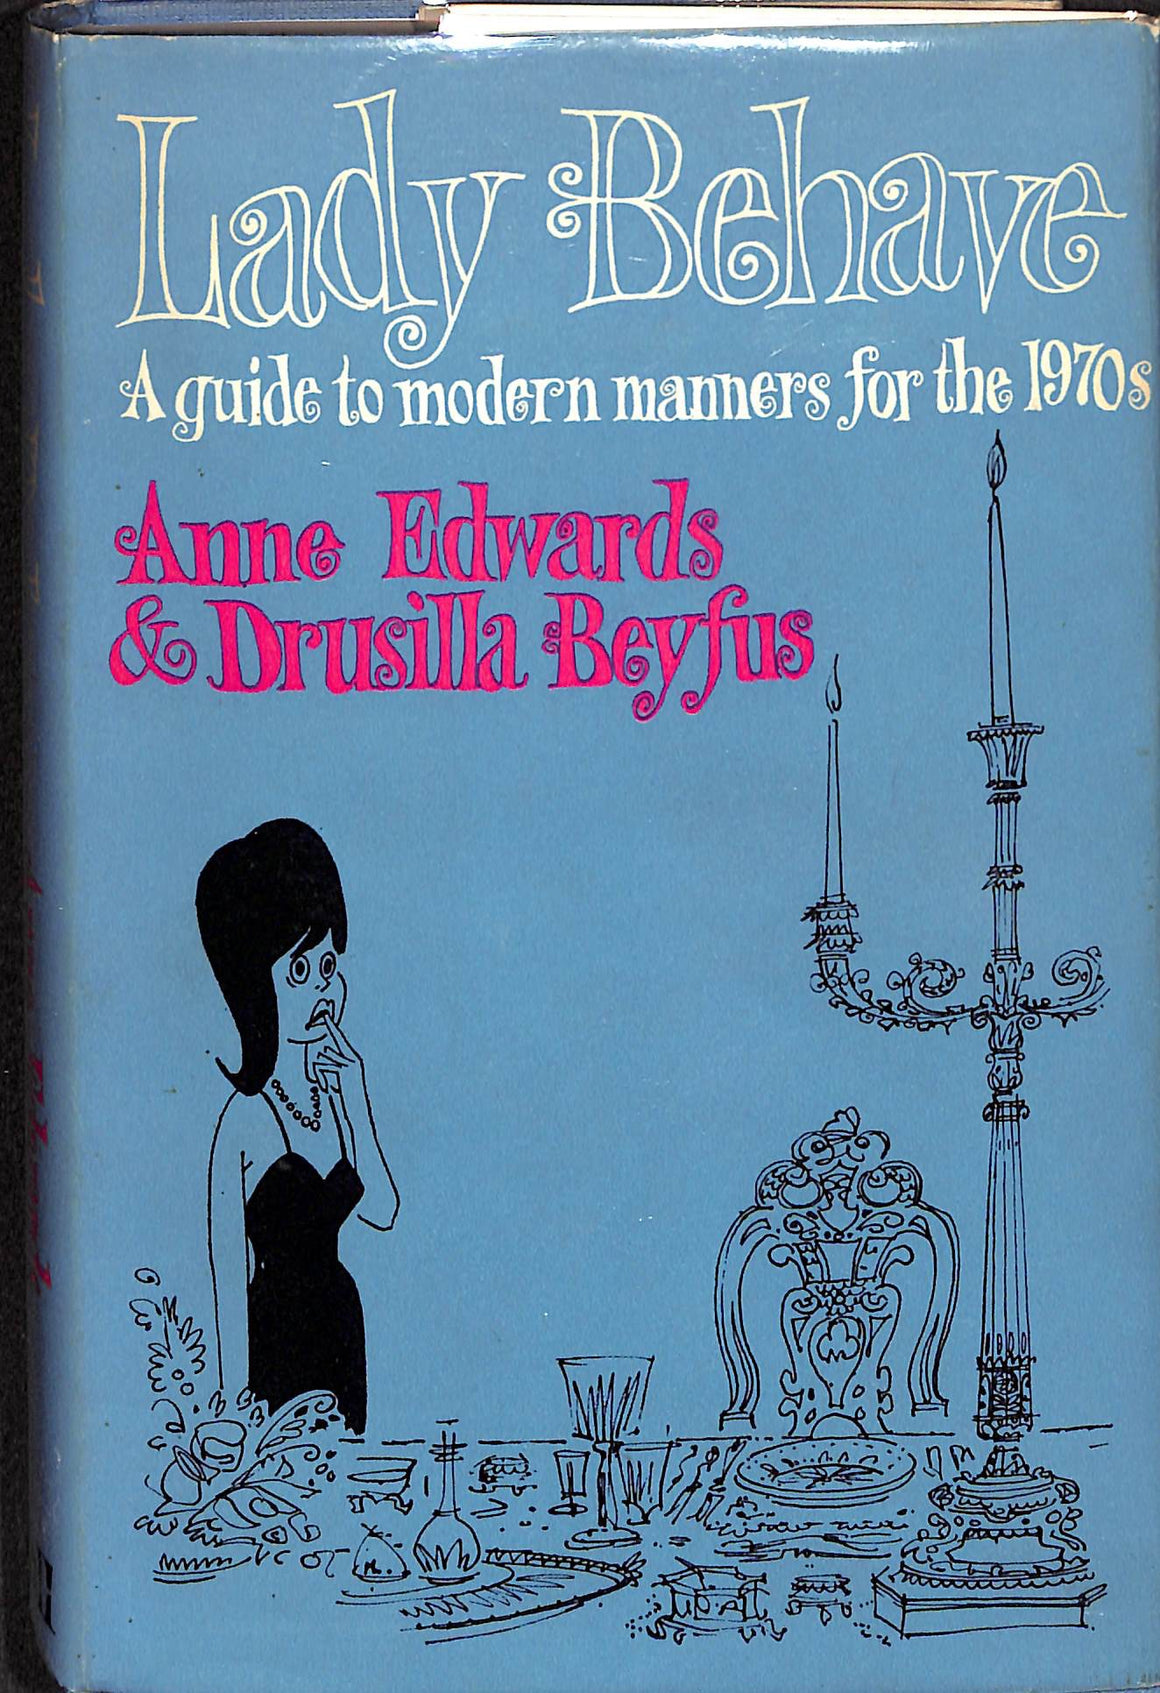 Lady Behave: A Guide to Modern Manners for The 1970s